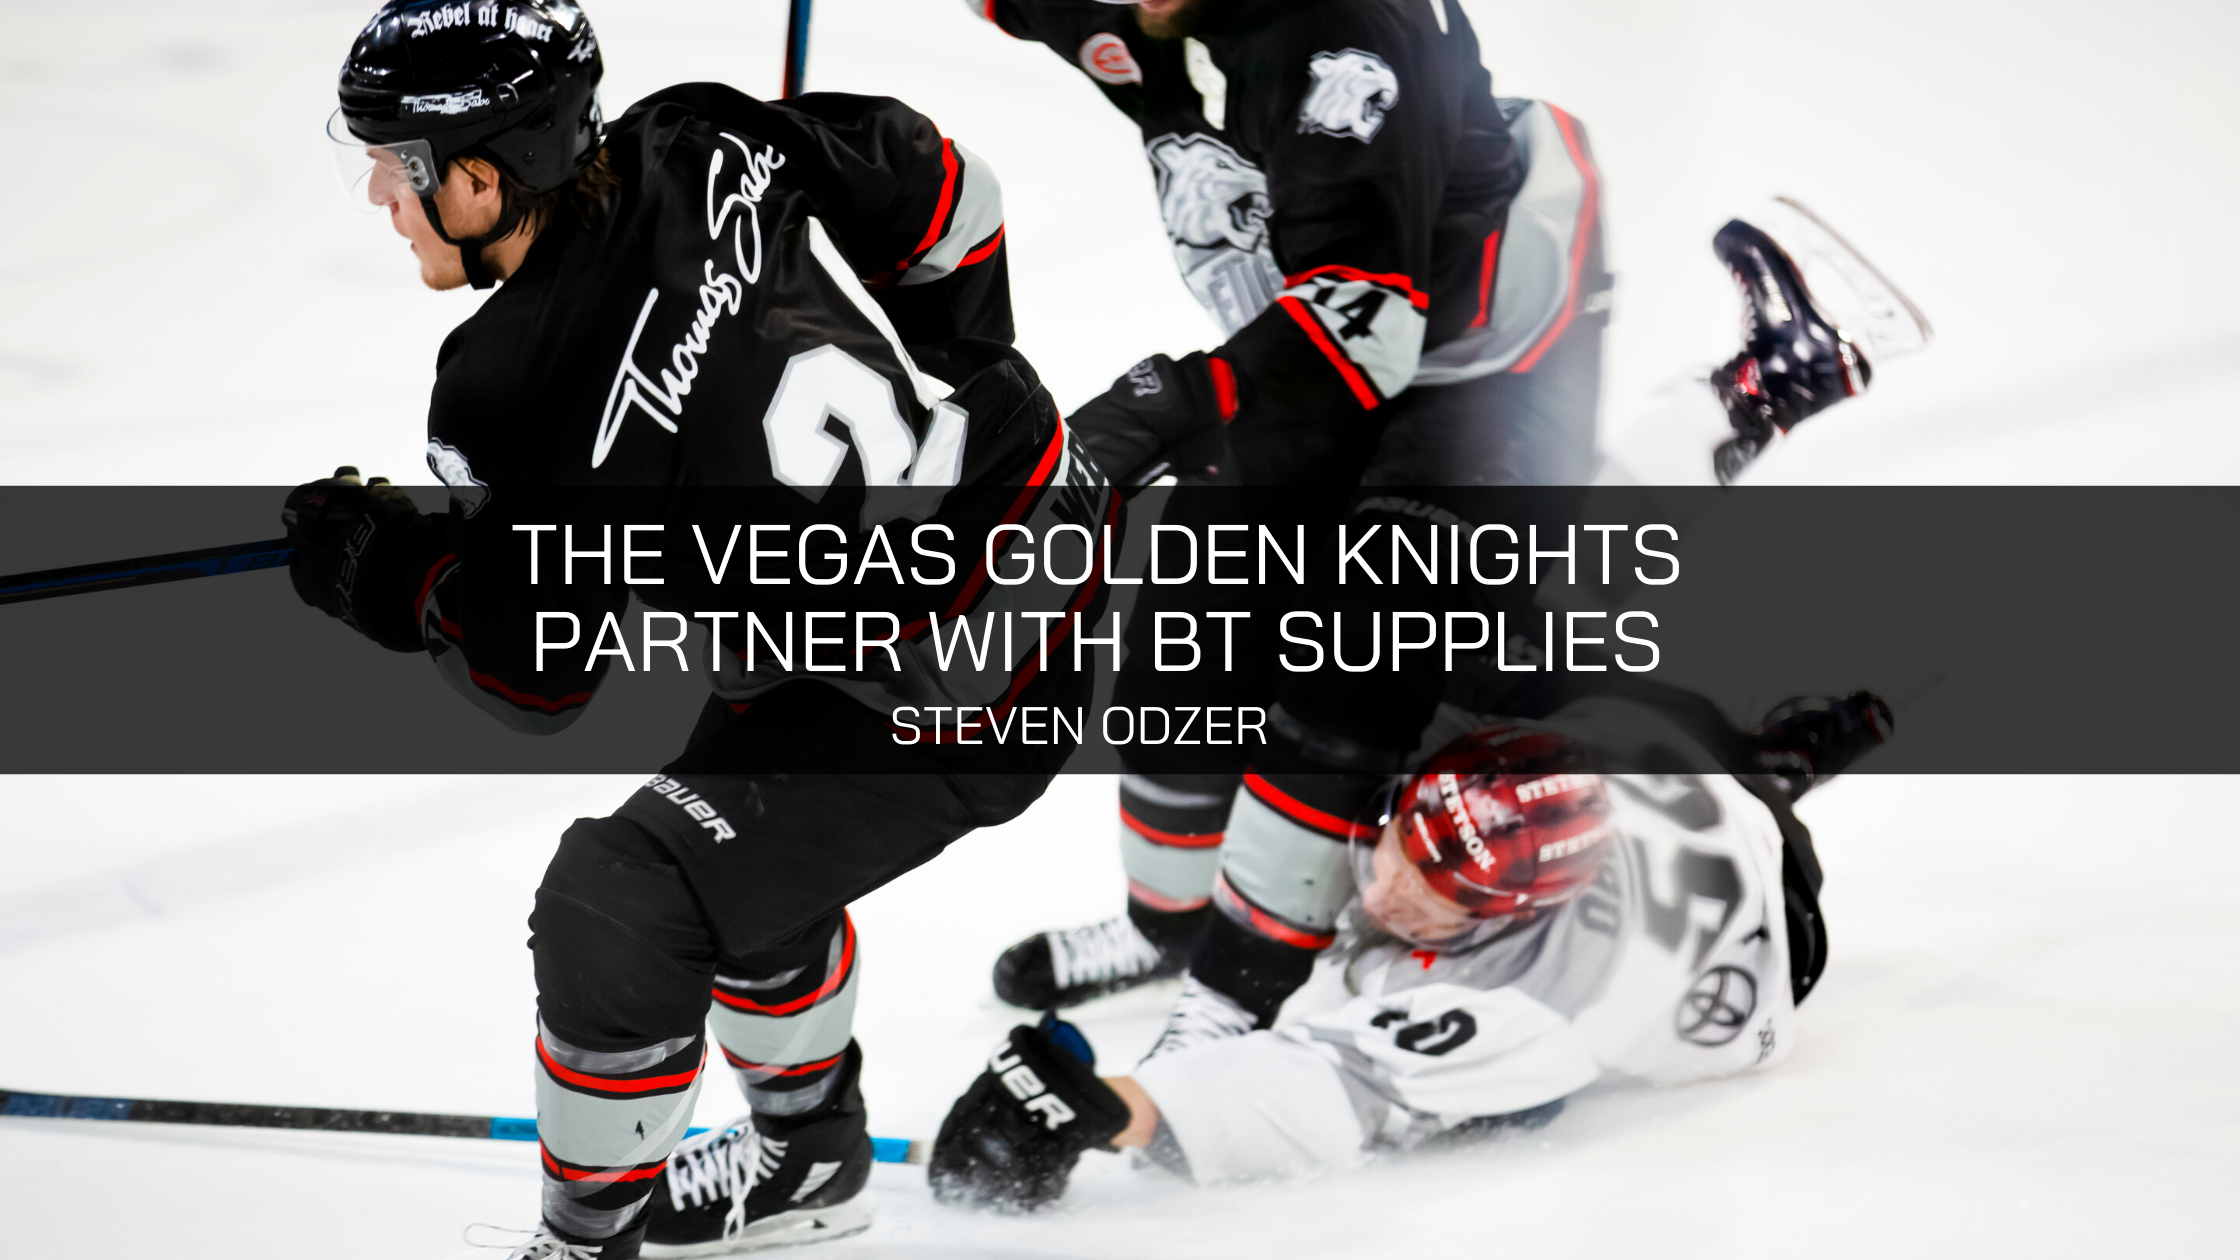 The Vegas Golden Knights Announce their Partnership with BT Supplies and Steven Odzer